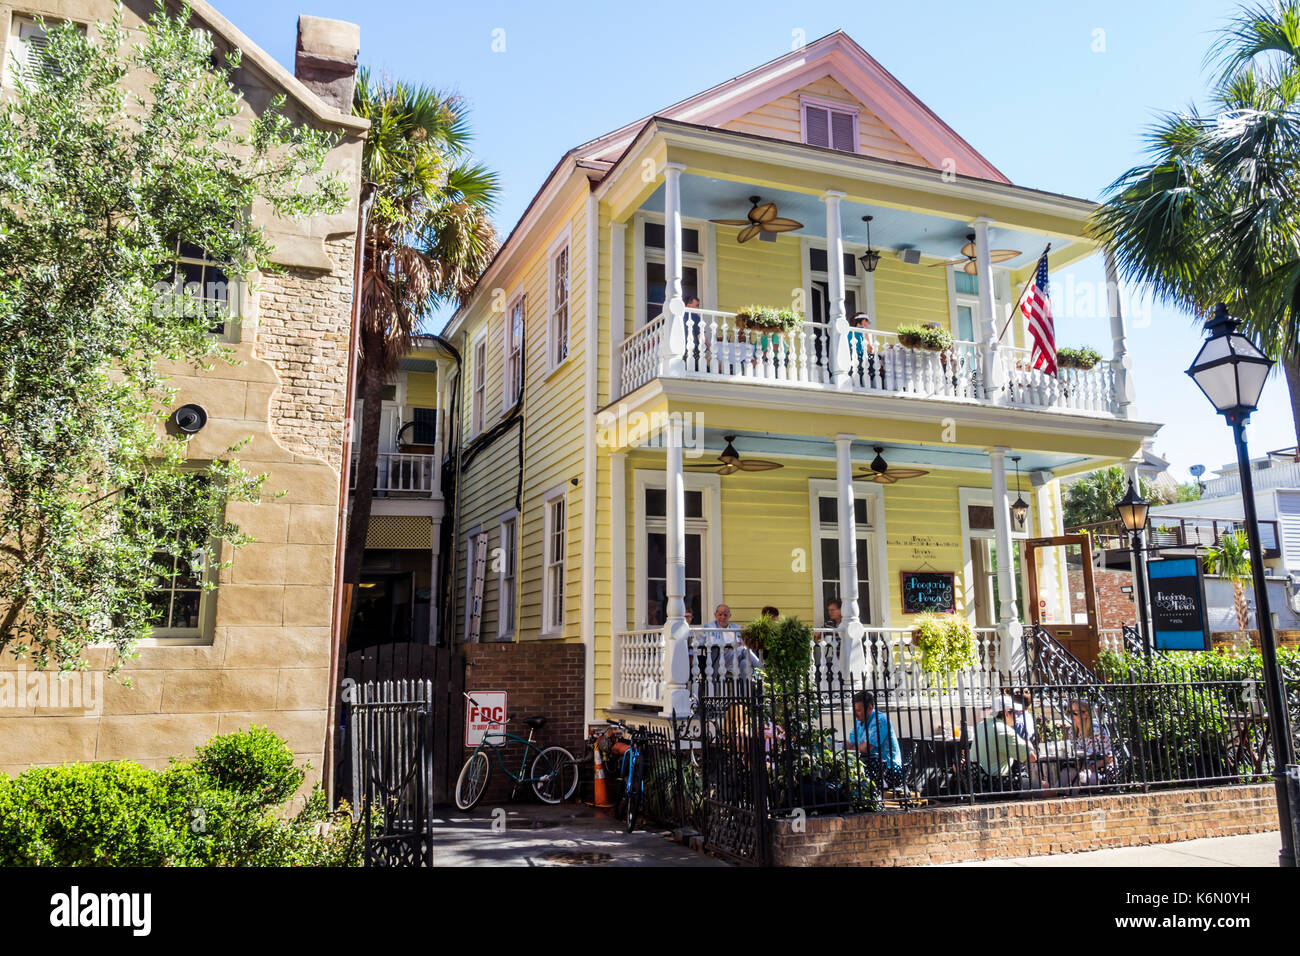 Charleston South Carolina SC Historic Downtown Queen Street Poogan's Porch southern cuisine restaurant dining - Stock Image